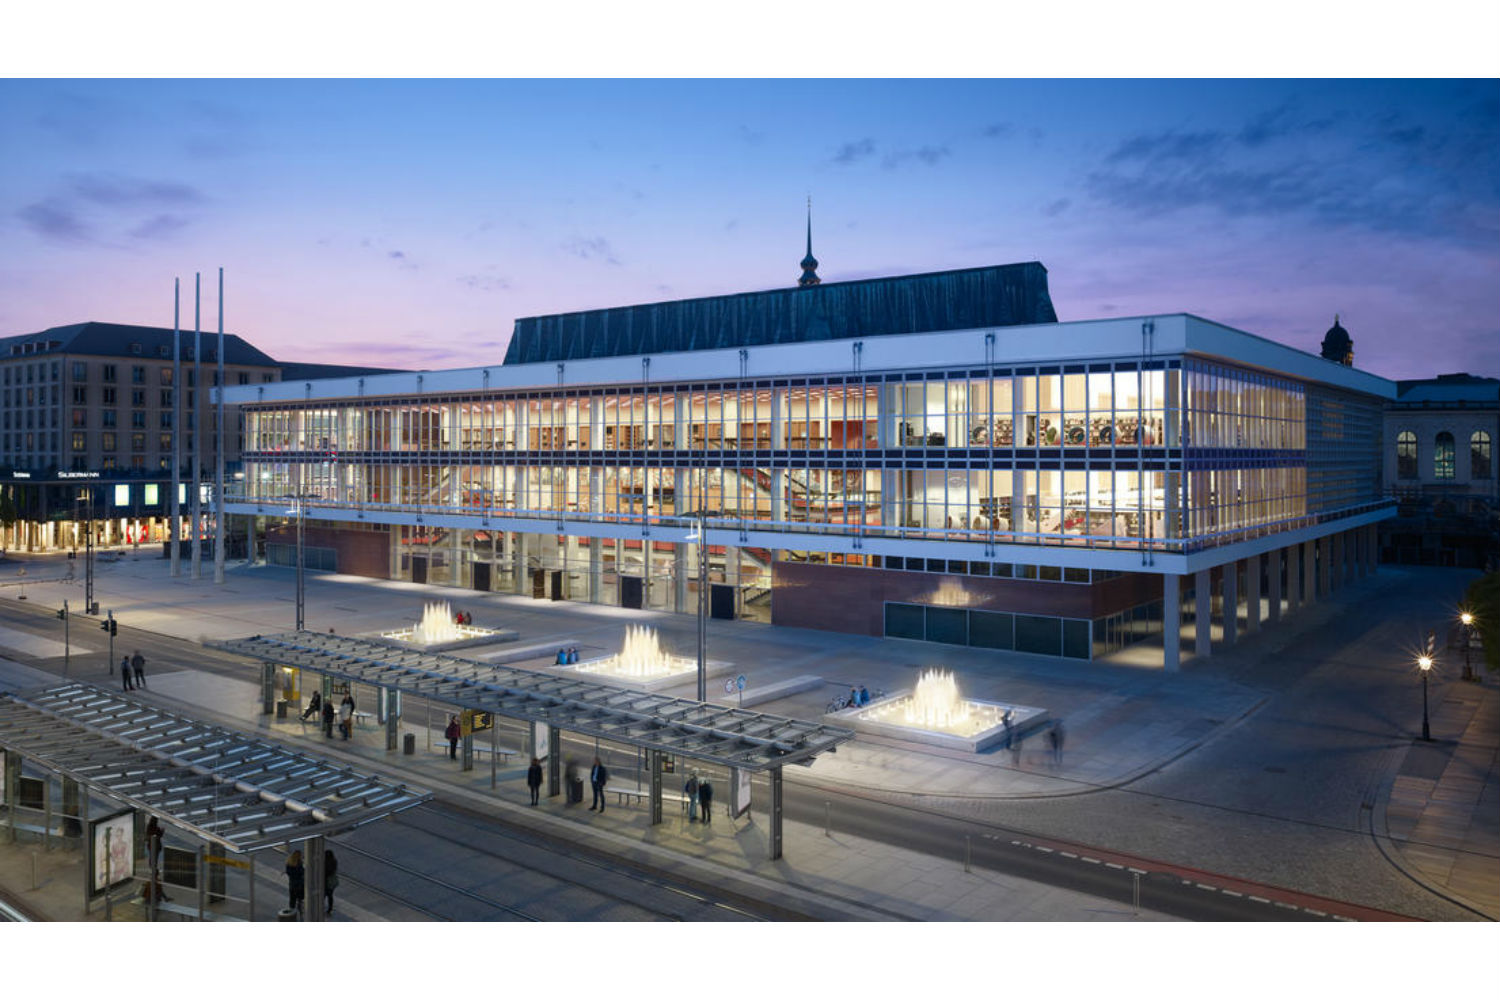 Located in the middle of Dresden's old town, the Kulturpalast highlights with its glass facades and striking roof structure. ADA (WSDG) was the responsible acoustician and consultant for the renovation. Facade Exterior